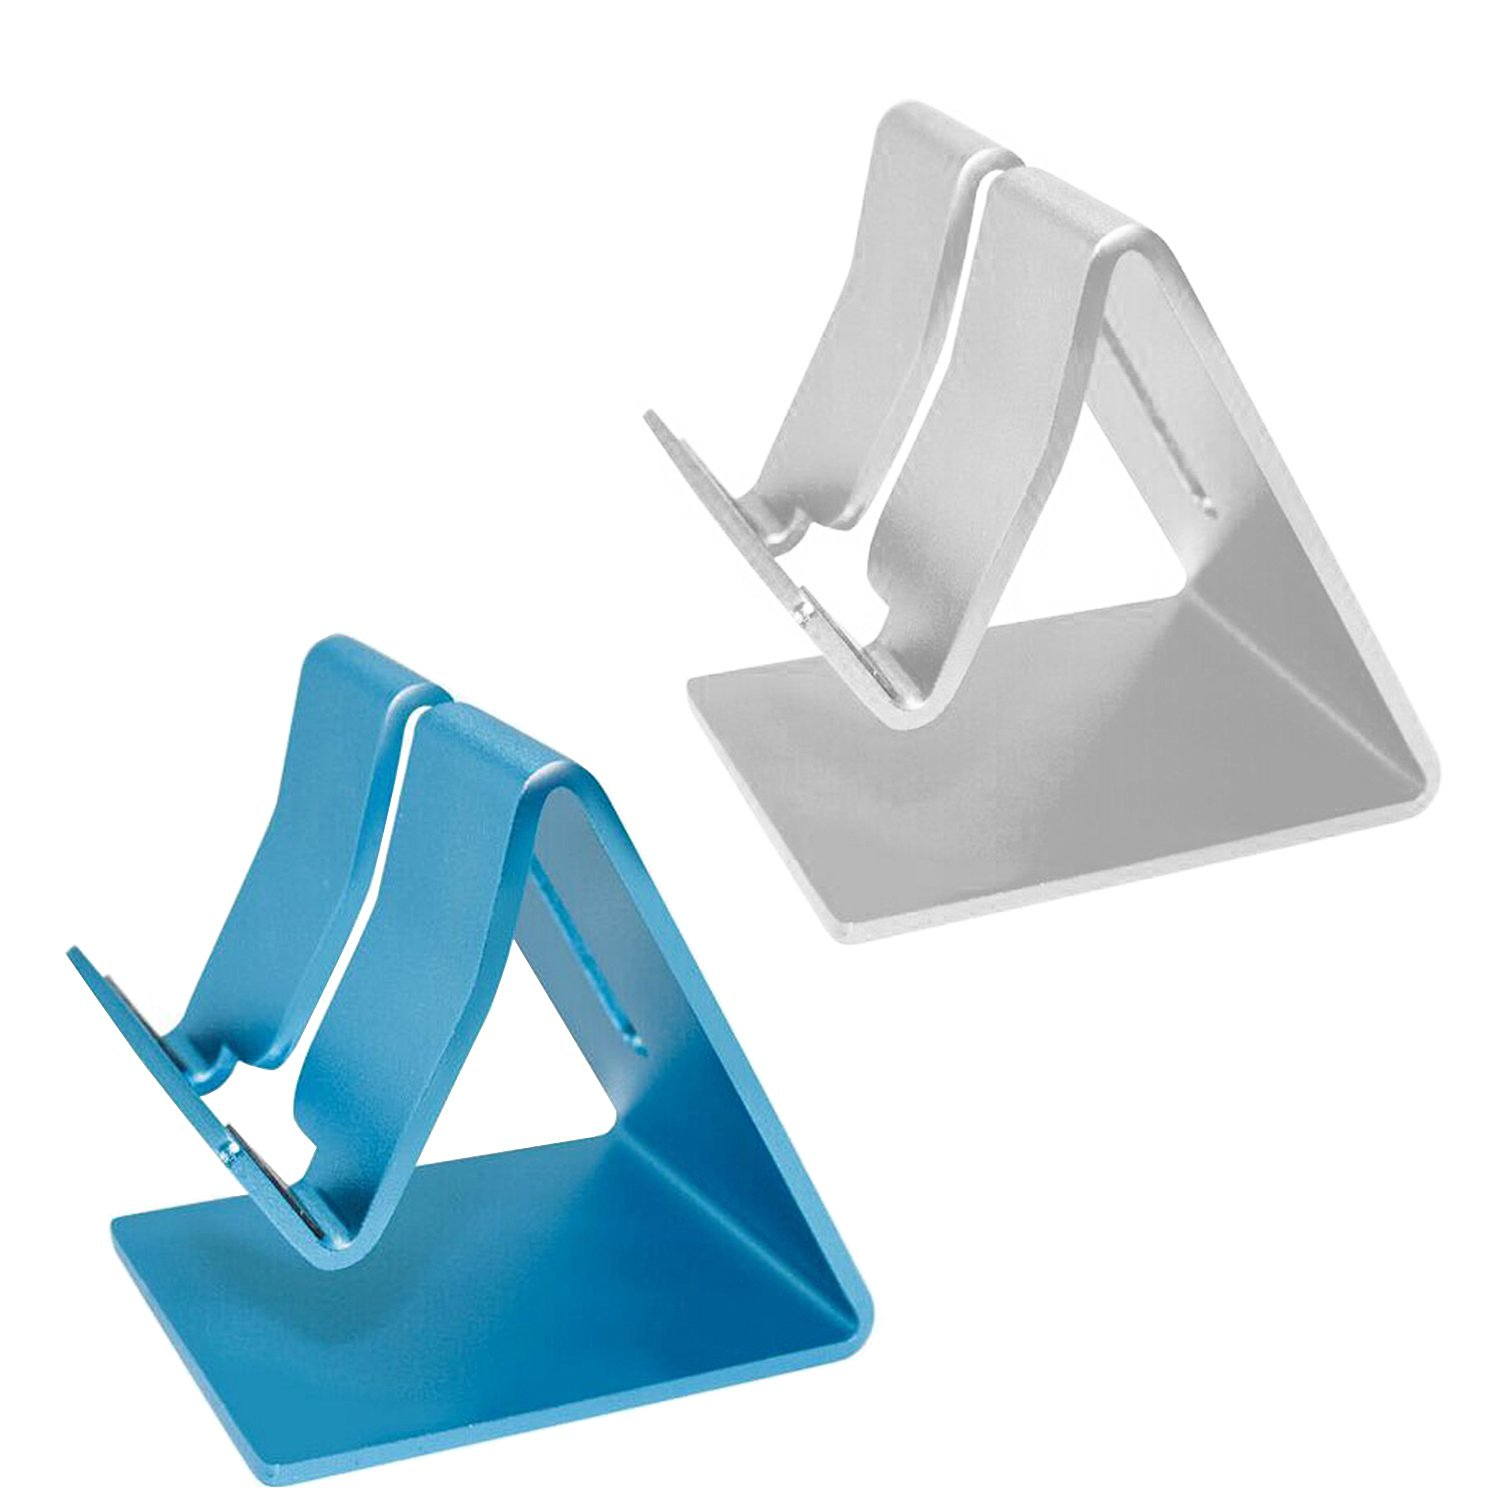 Litop 2 PCS Silver Color and Blue Aluminum Cell Phone and Tablet Stand for Coby Samsung Apple Lenovo Dell Asus Google iPhone LG HTC Nokia Motorola